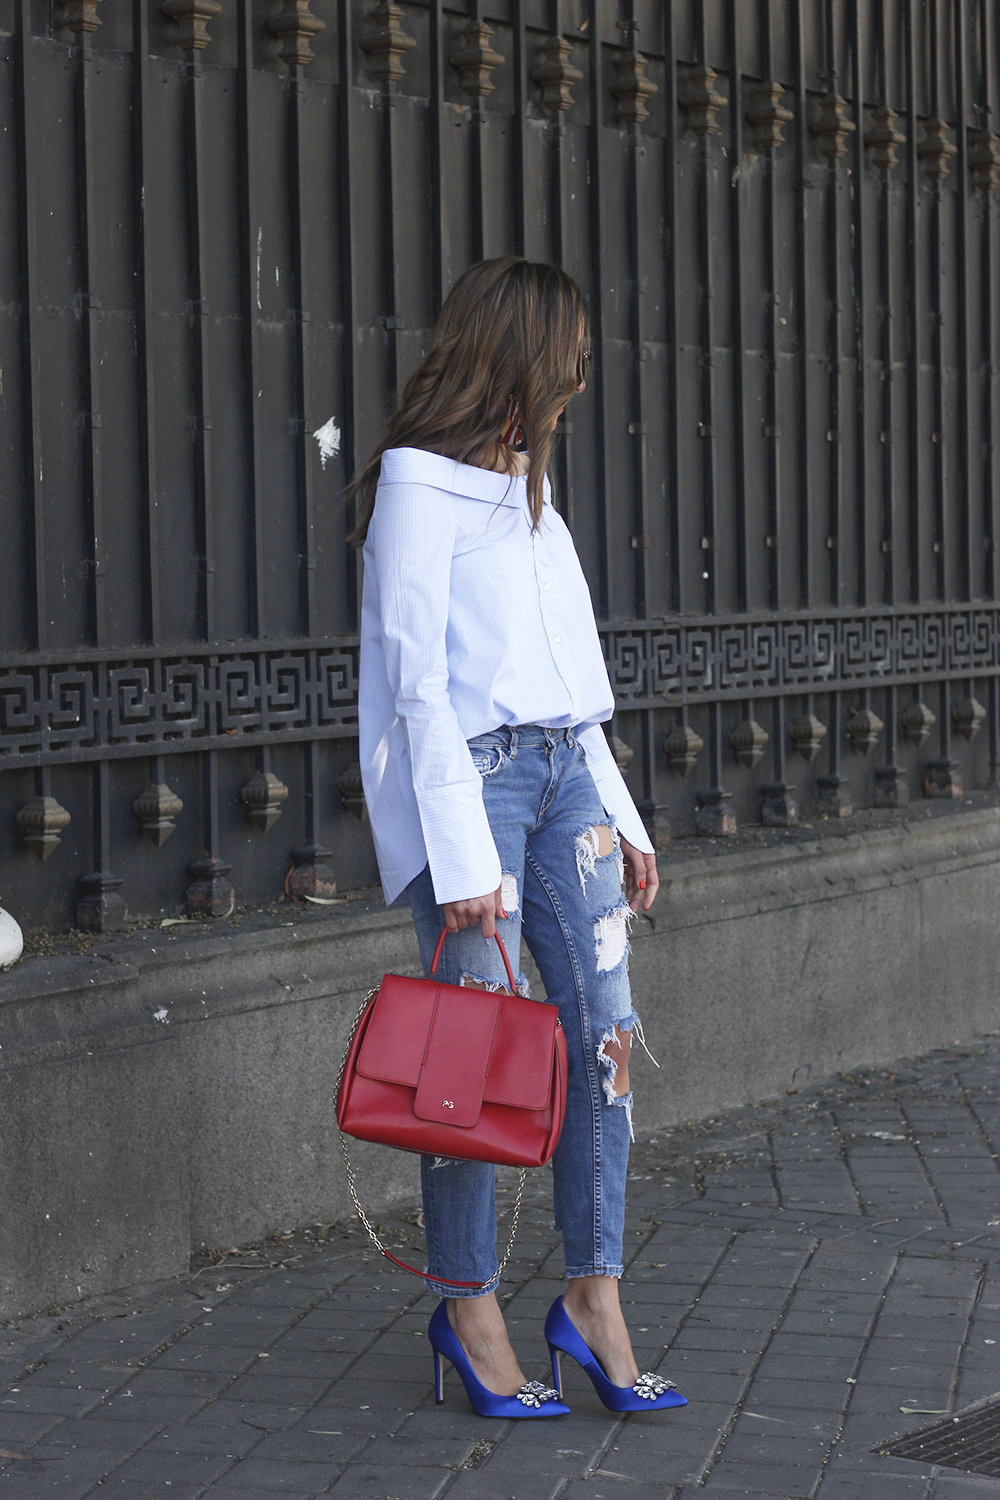 blue klein jewel heels uterqüe ripped jeans striped shirt red bag outfit style fashion01